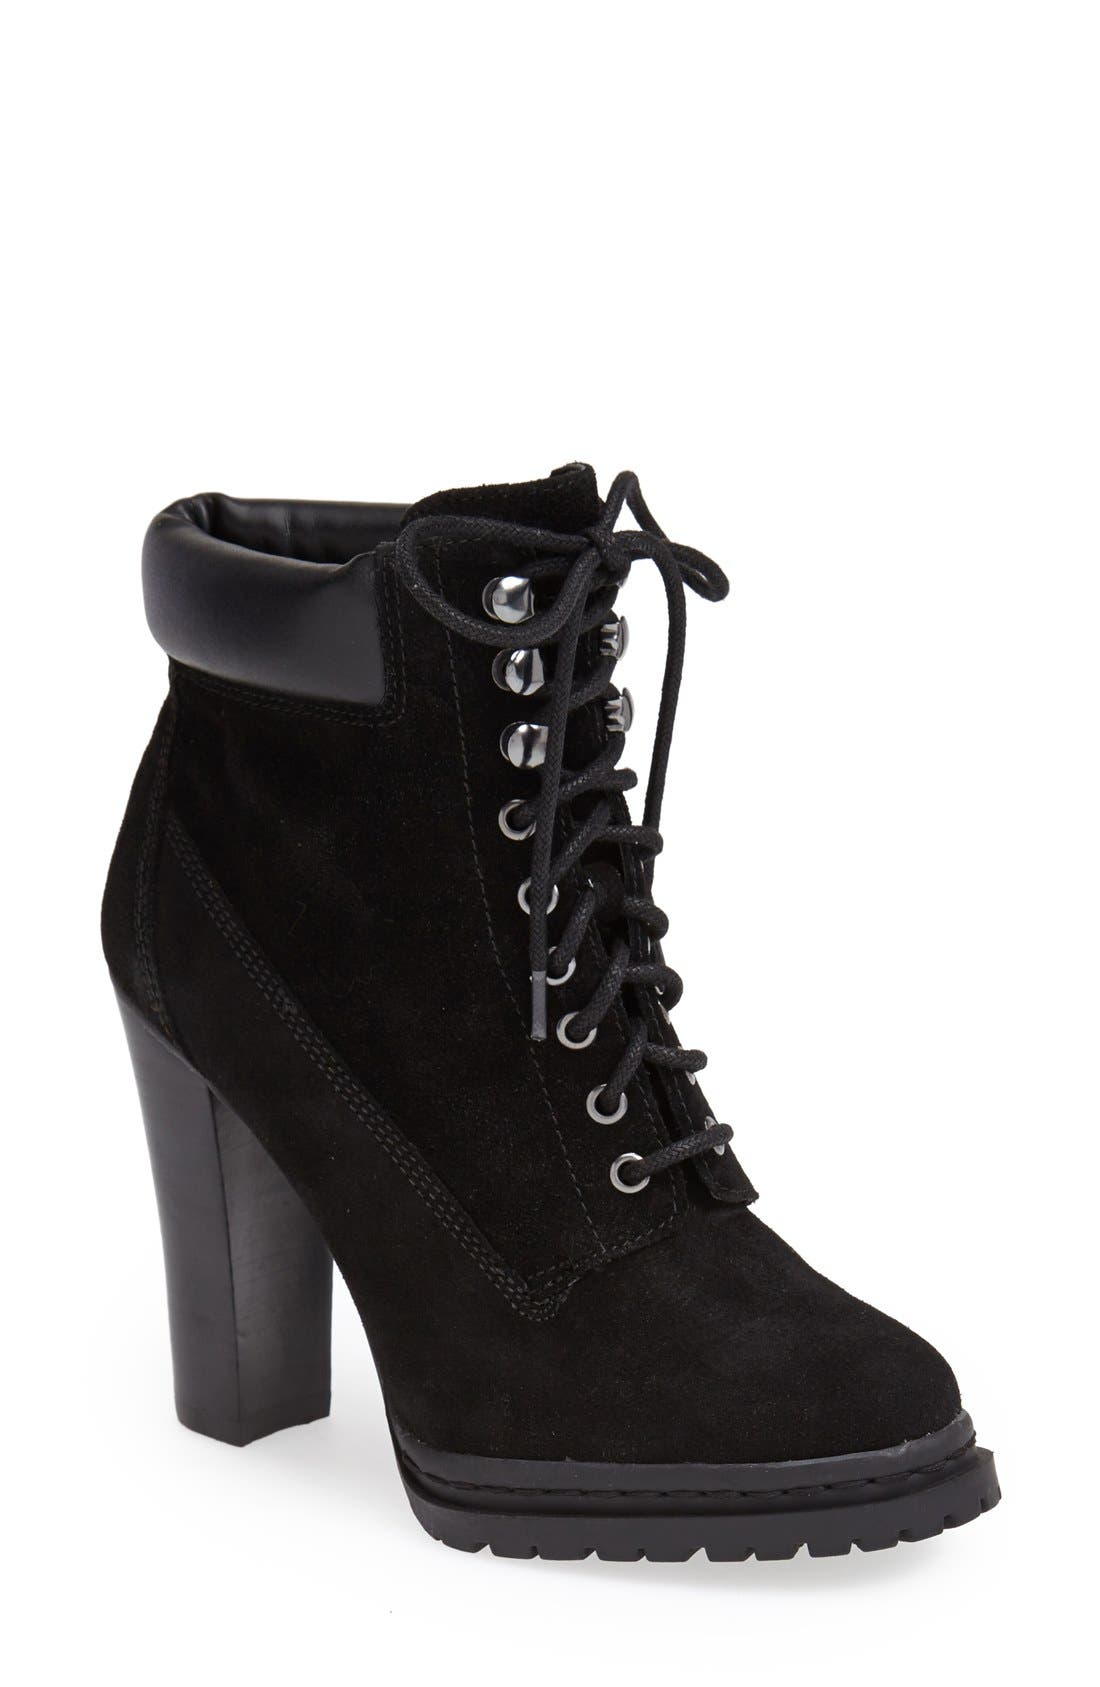 Alternate Image 1 Selected - BCBGeneration 'Maude' Lace-Up Bootie (Women)